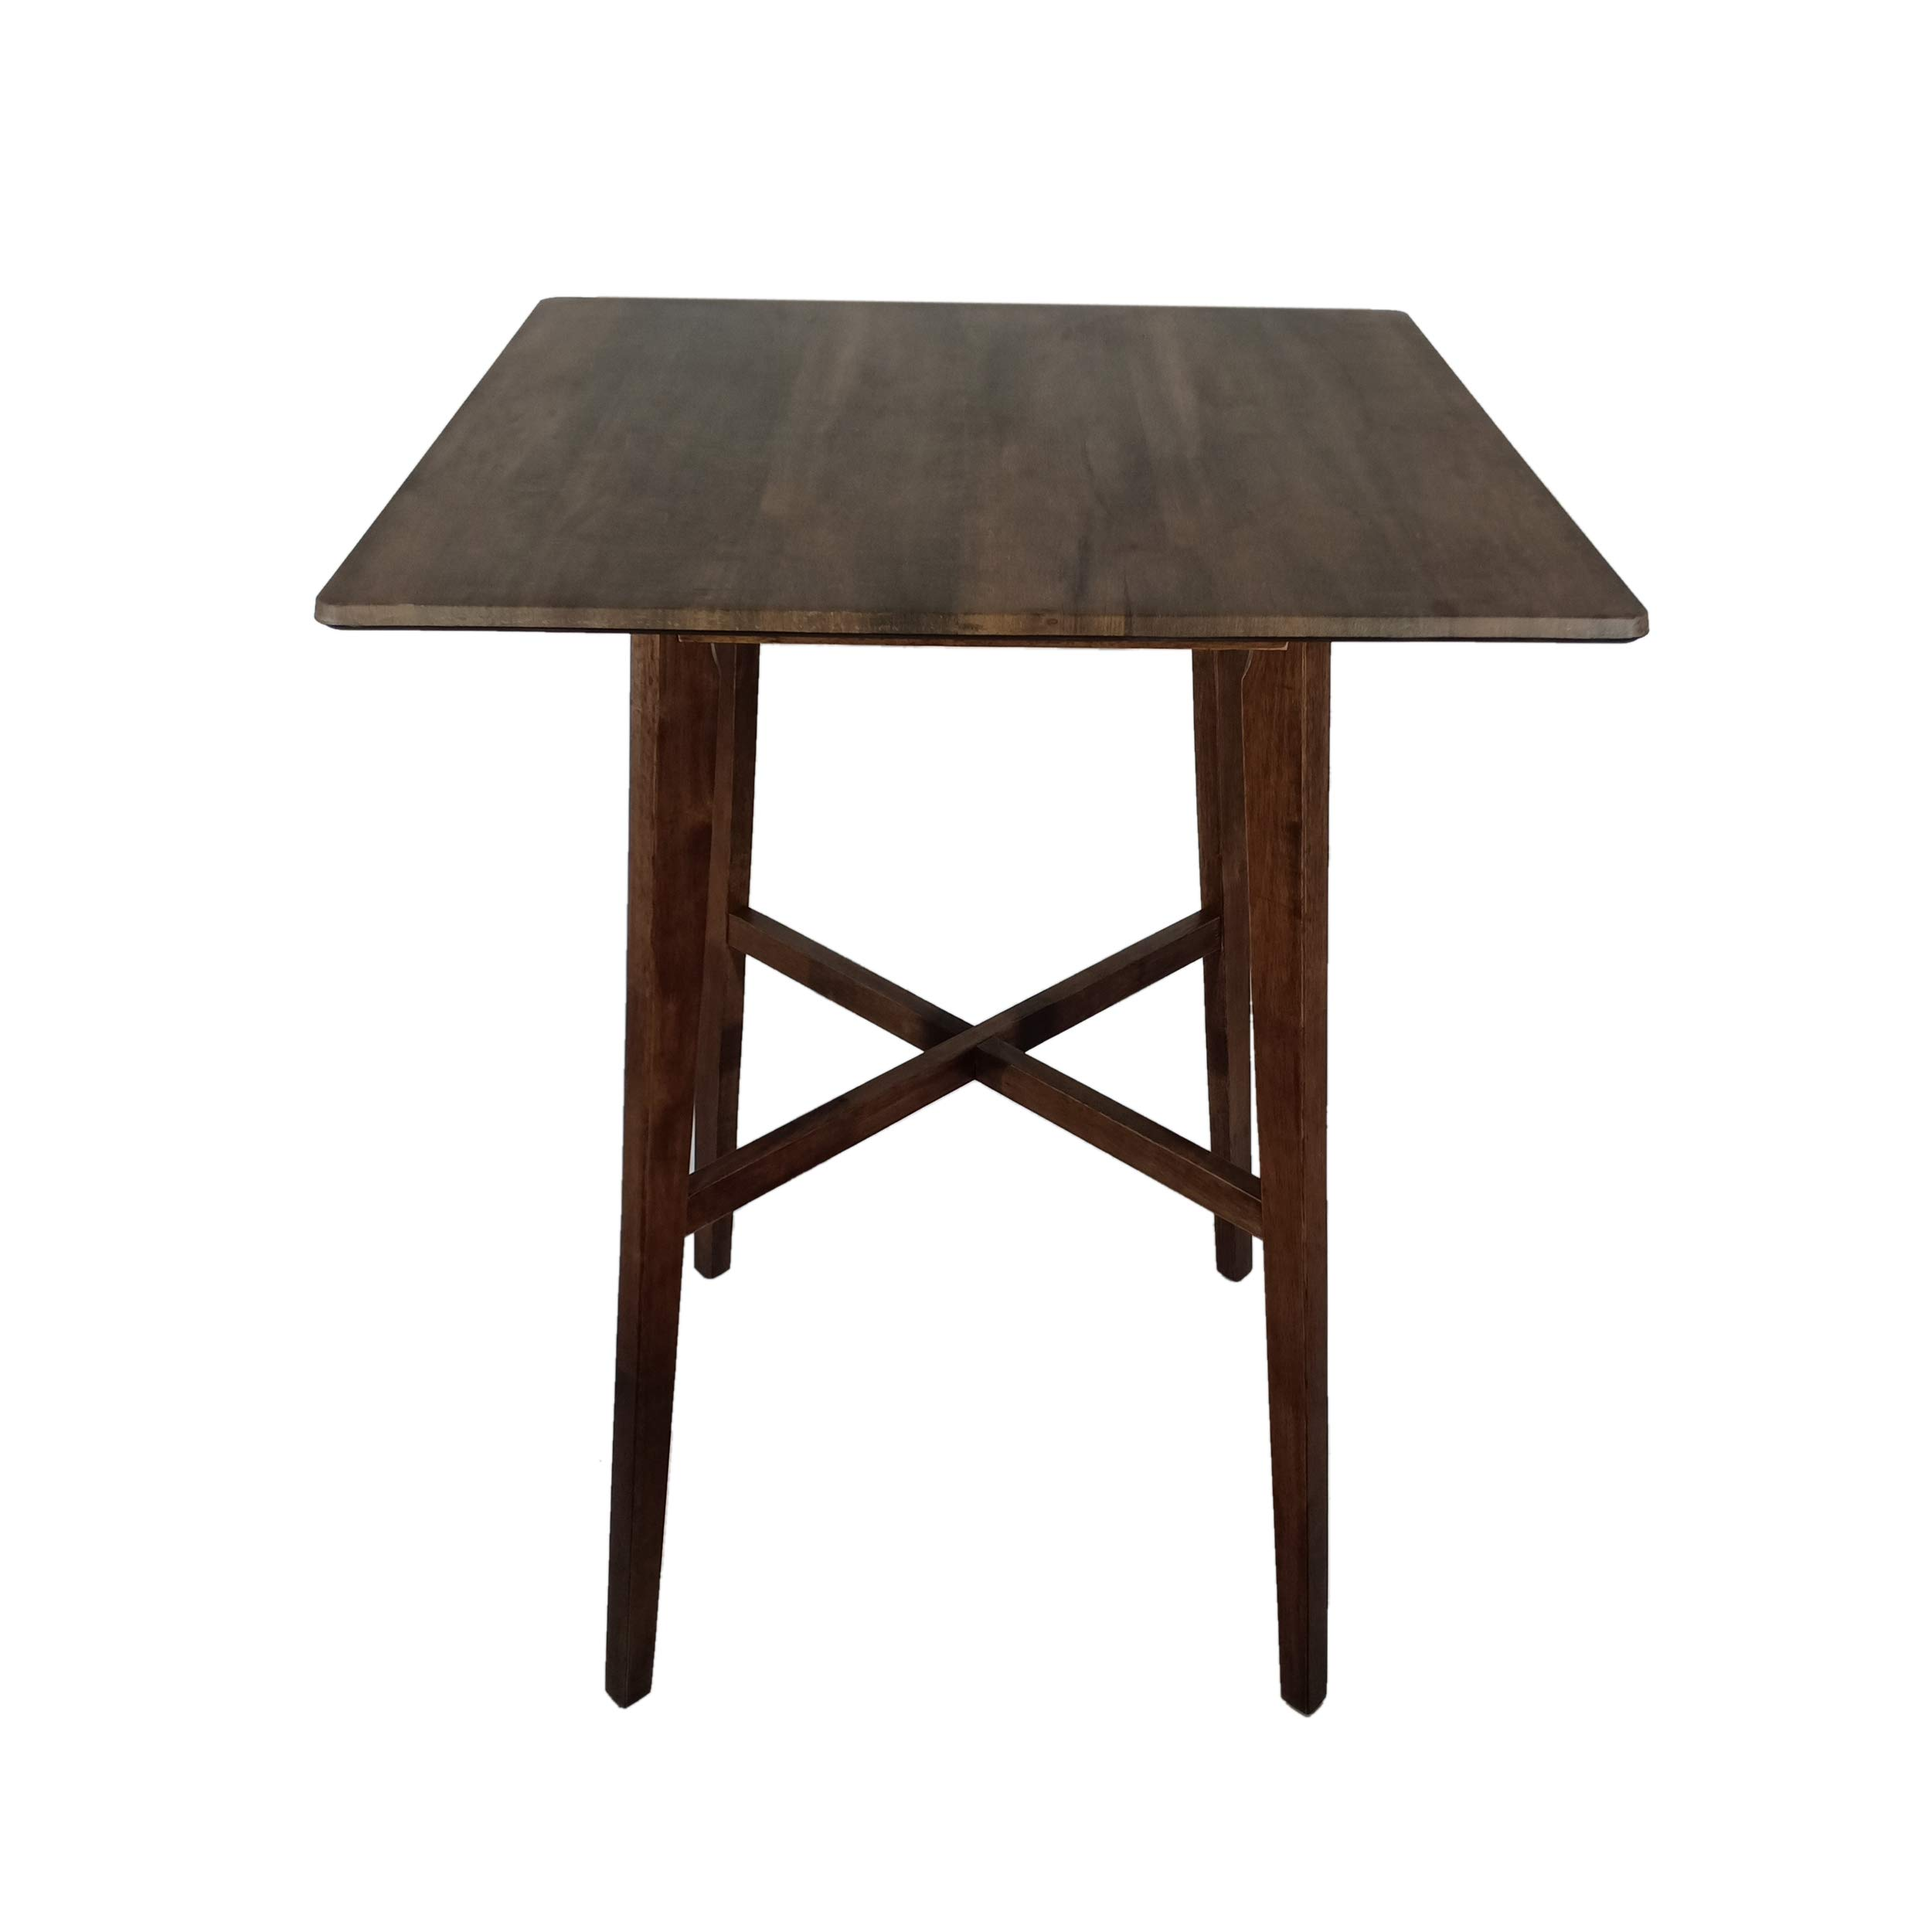 Christopher Knight Home Daisy Modern Bar Rubberwood Legs and Laminate Table Top, Walnut Finish by Christopher Knight Home